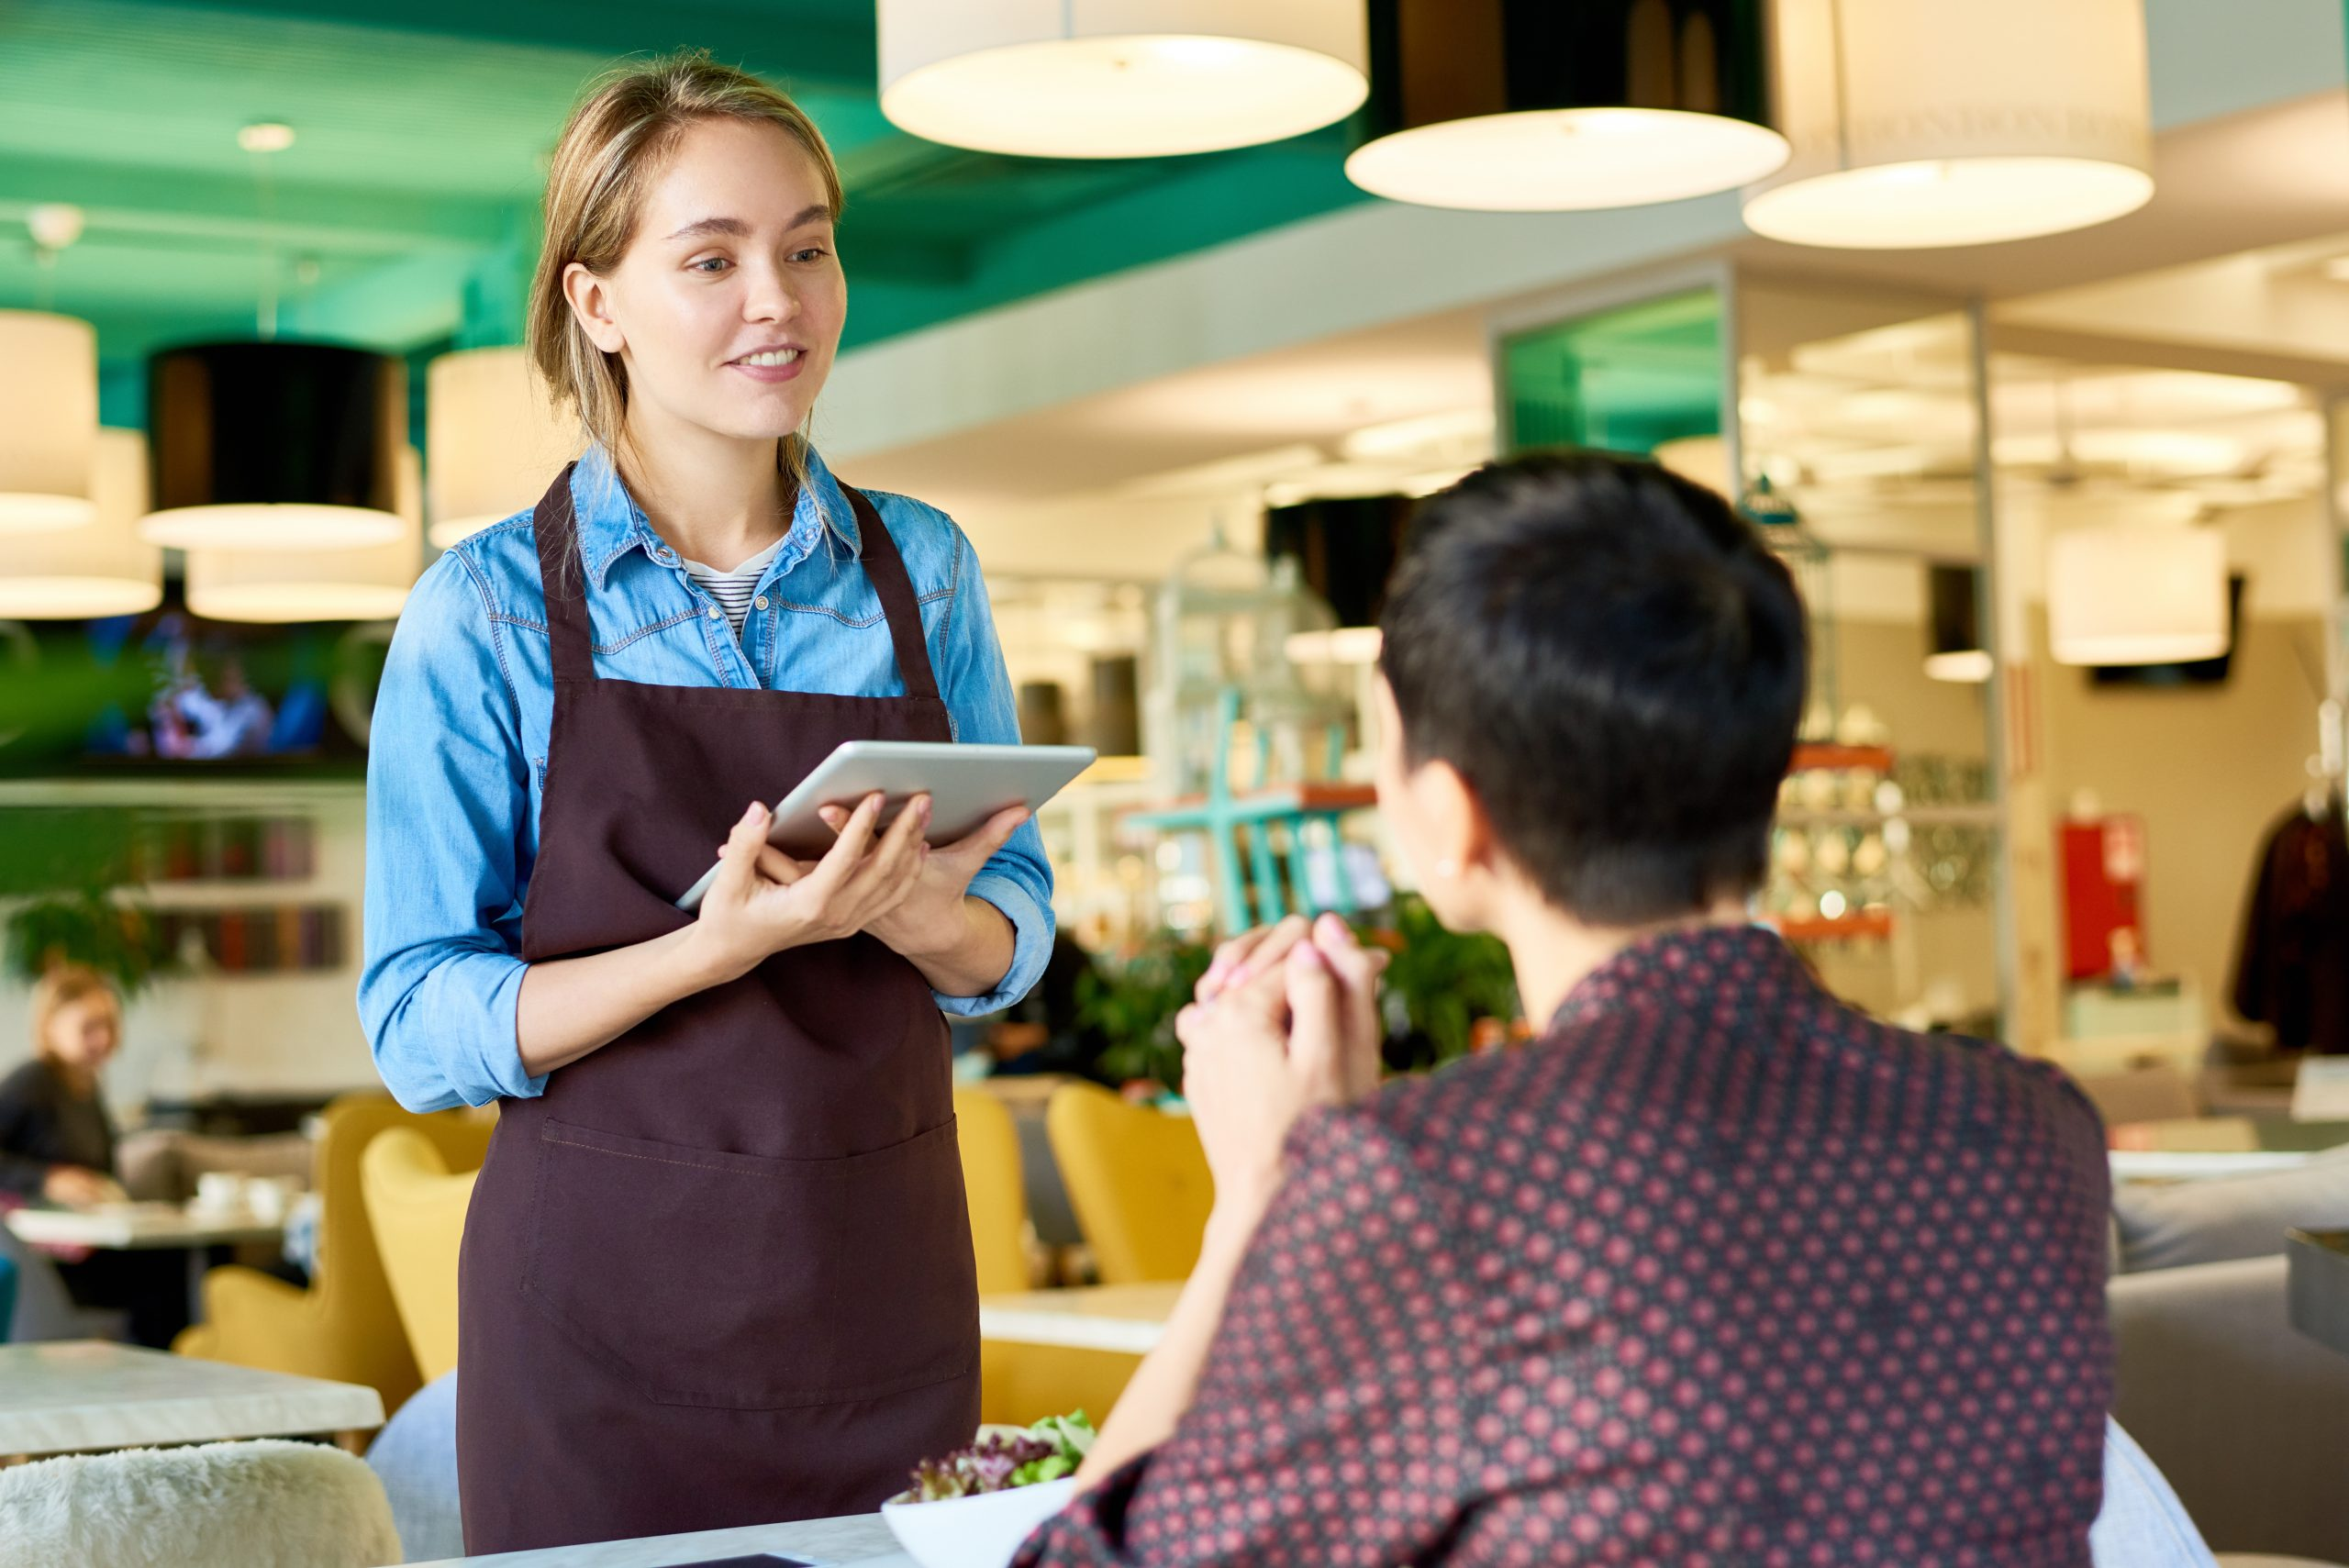 waitress taking order from client in cafe using digital tablet